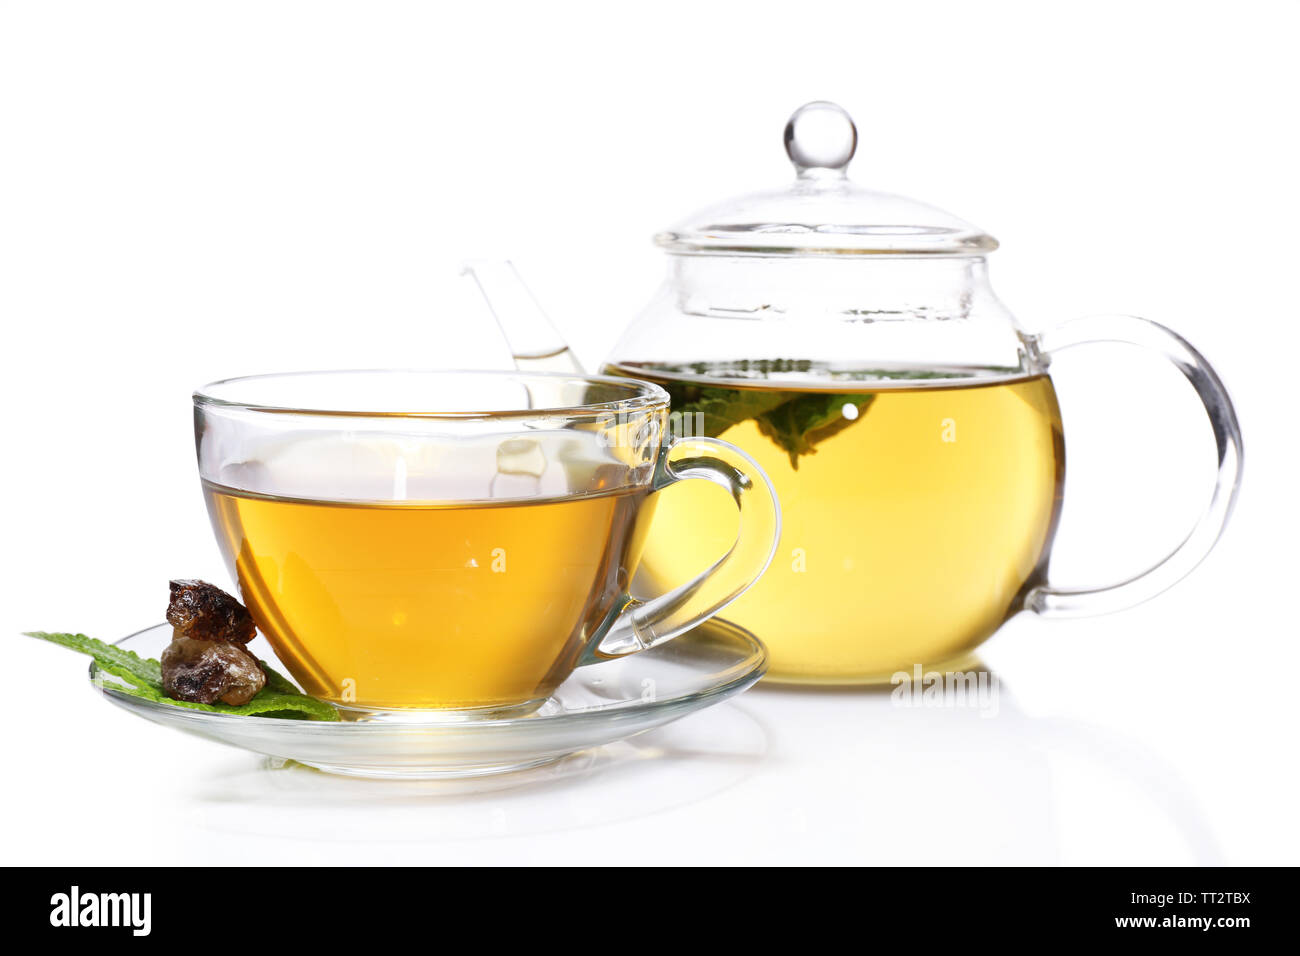 Composition of fresh mint tea in glass cup and teapot and brown sugar isolated on white - Stock Image